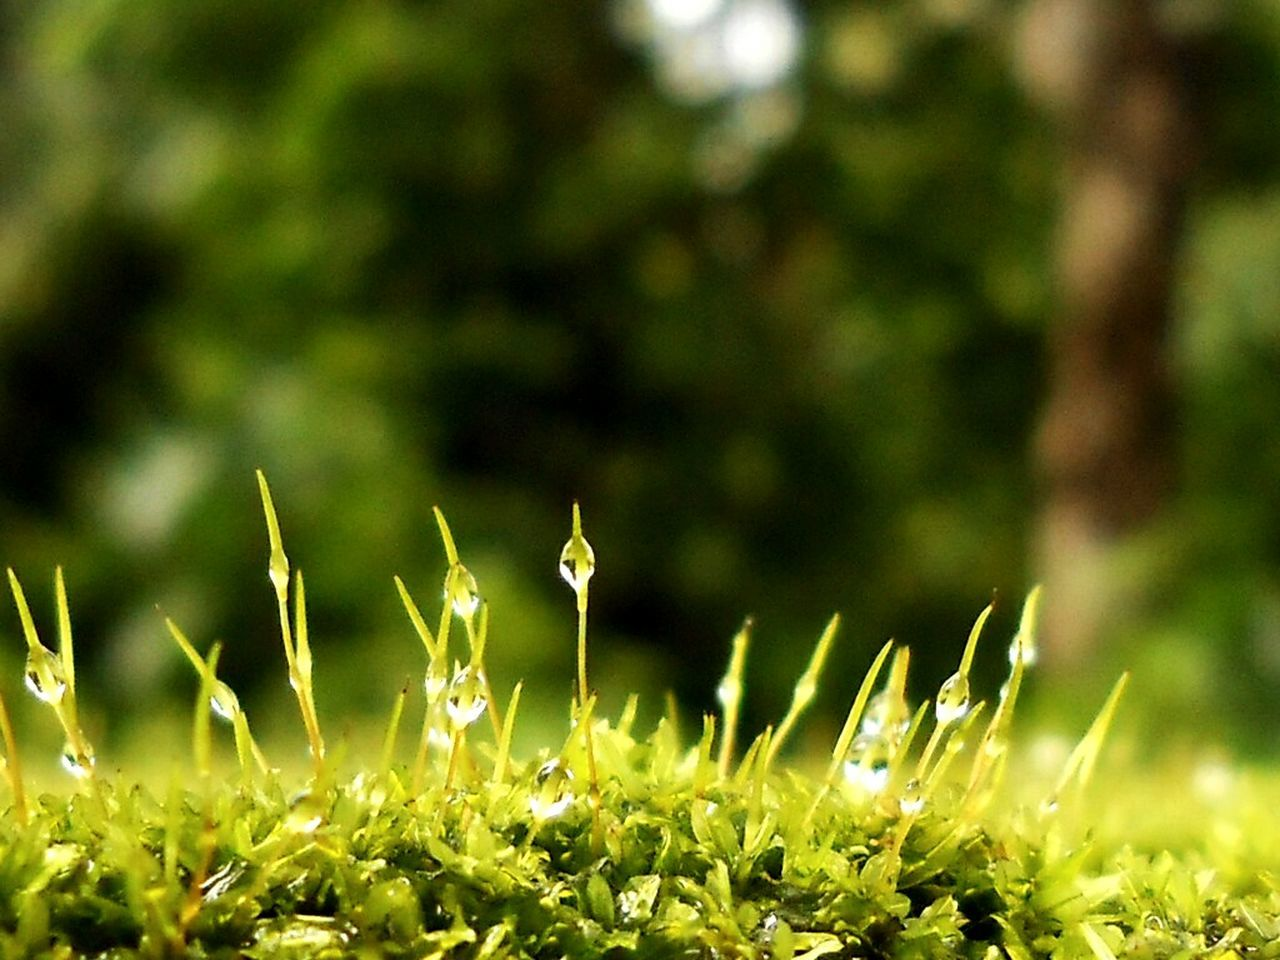 growth, nature, plant, beauty in nature, grass, no people, outdoors, green color, flower, day, freshness, close-up, fragility